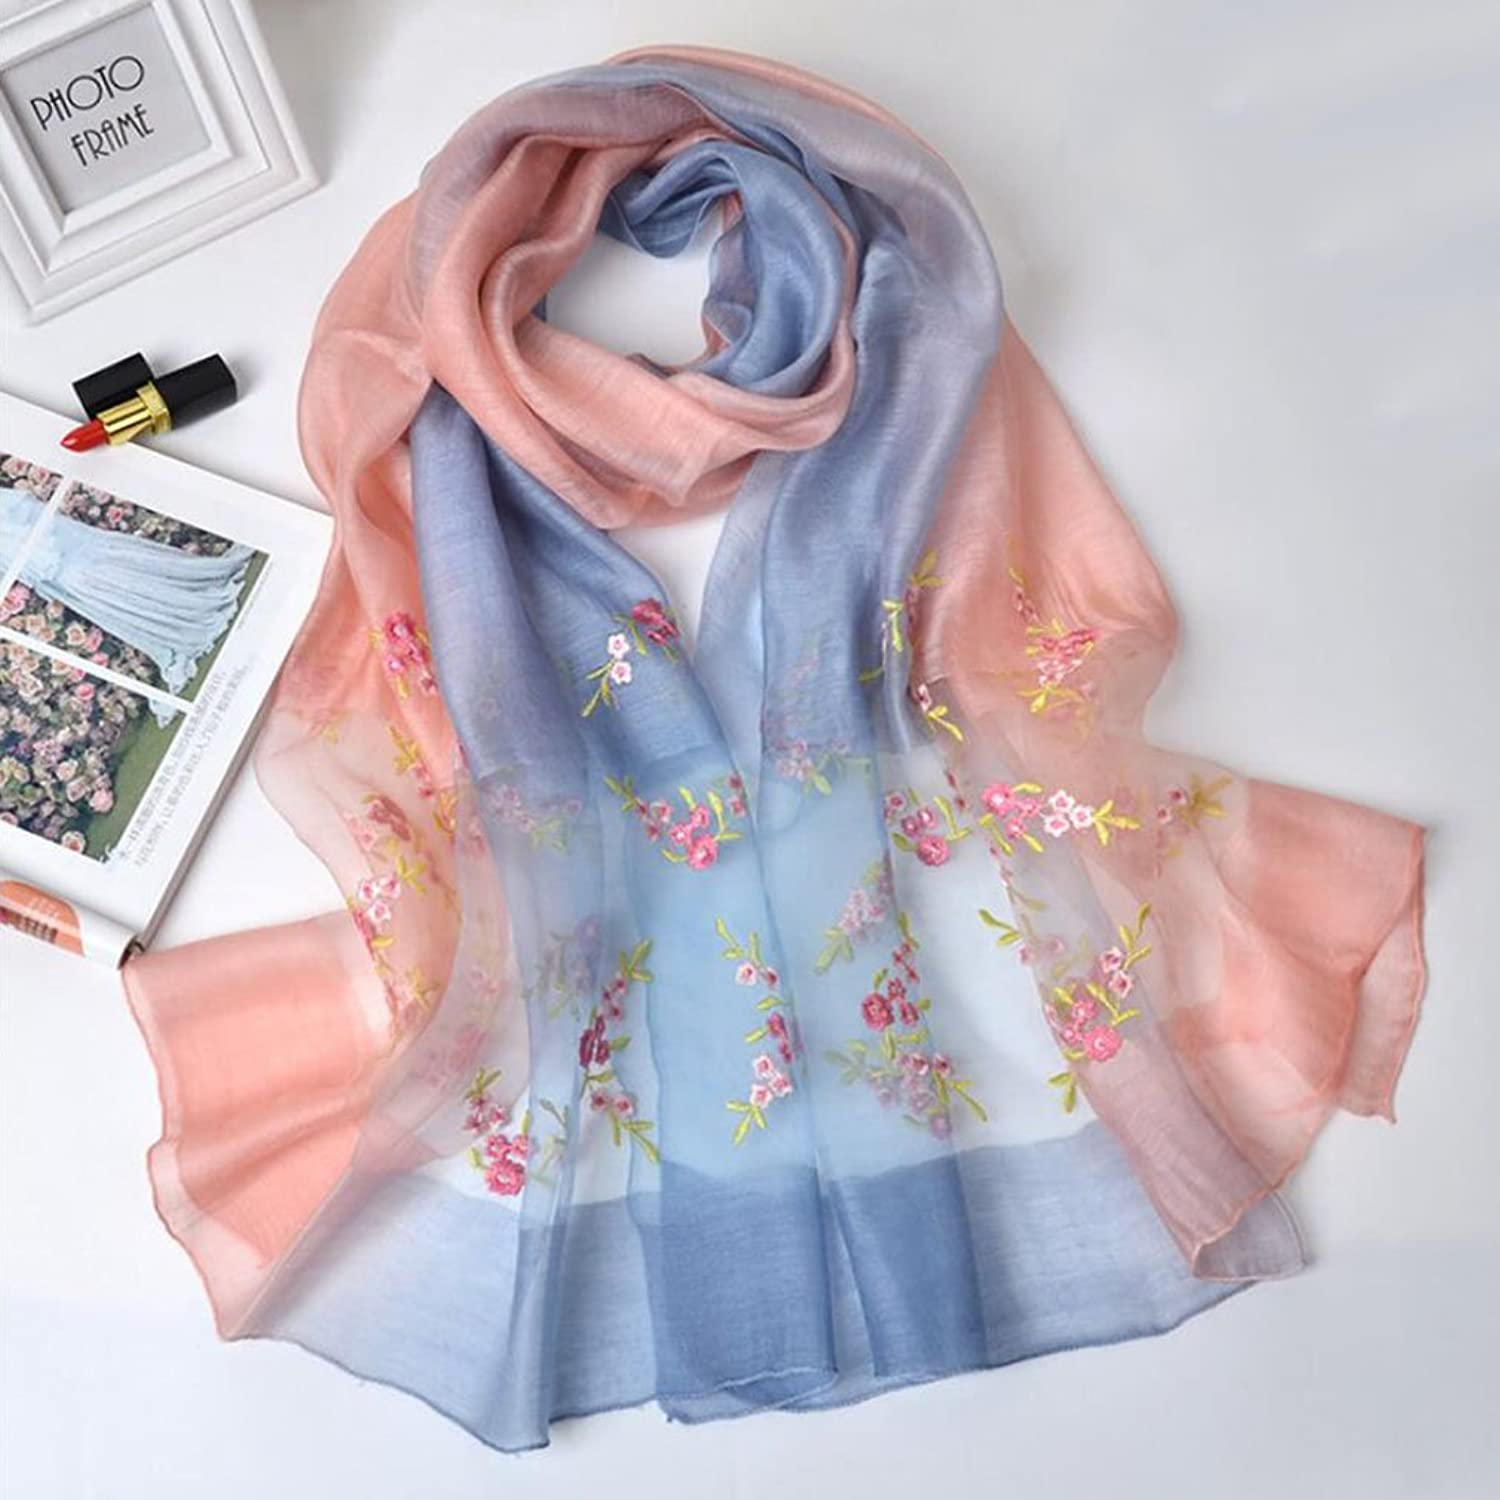 Woman shawl Women Scarf Flower Embroidered Lace Scarf Long Soft Wrap Shawl Stole Pashmina Home Decoration ( Size   3 )